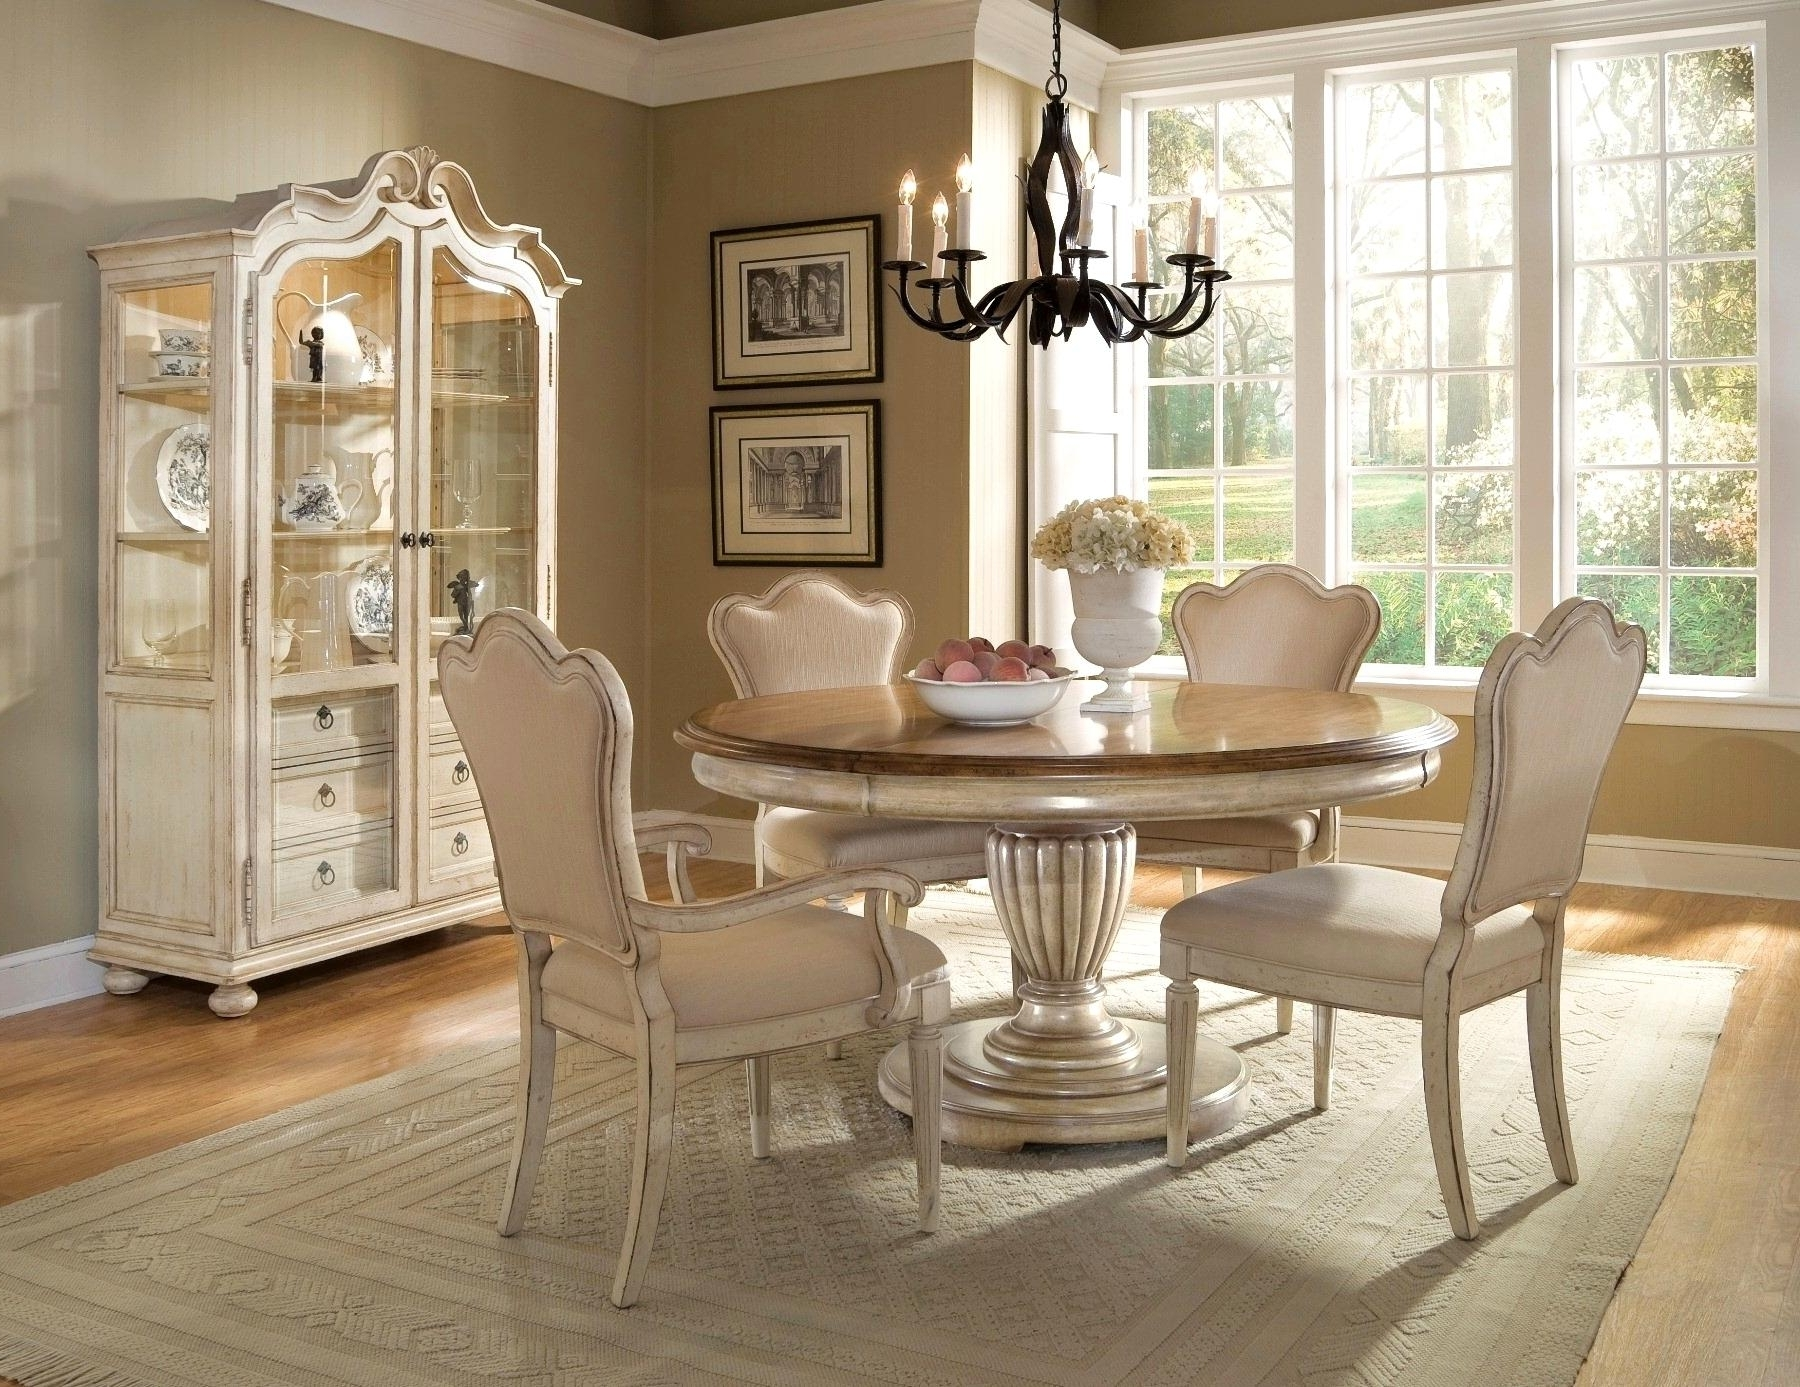 Cream Dining Tables And Chairs Pertaining To Most Recent Breathtaking Cream Dining Tables Chairs Luxurius Home Gorgeous Round (View 11 of 25)